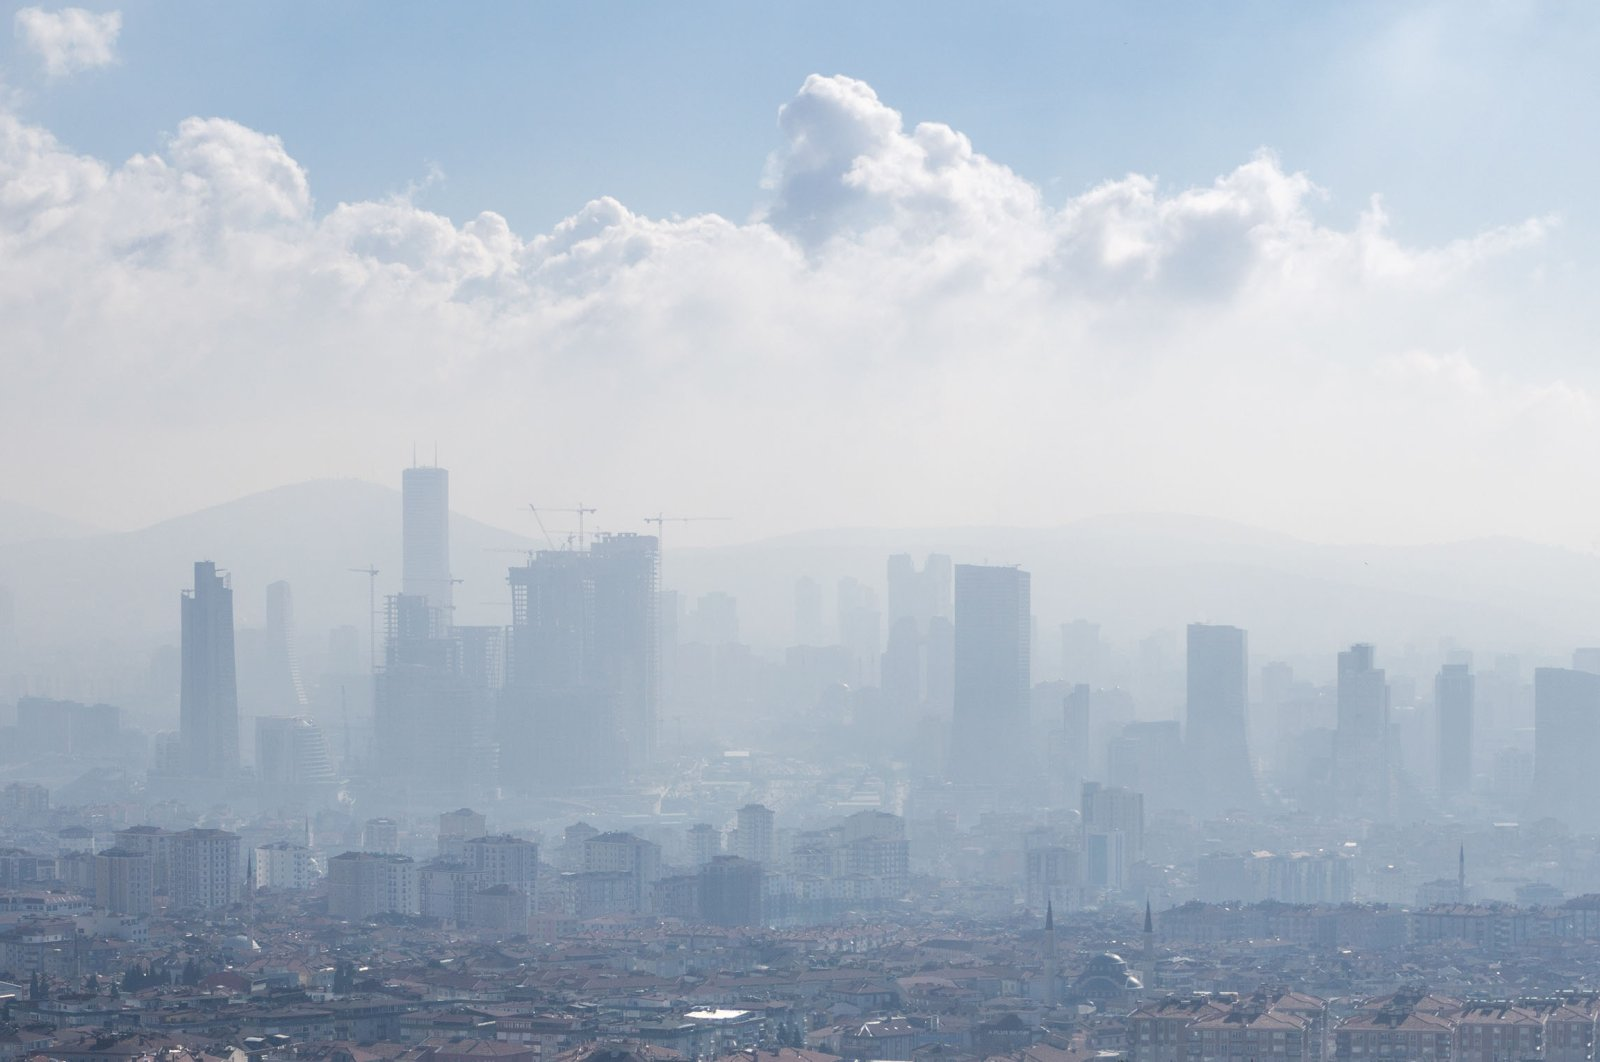 The U.N. blames air pollution for at least 7 million deaths every year, and nine out of 10 people breathe air that WHO guidelines say is unhealthy. (Shutterstock photo)